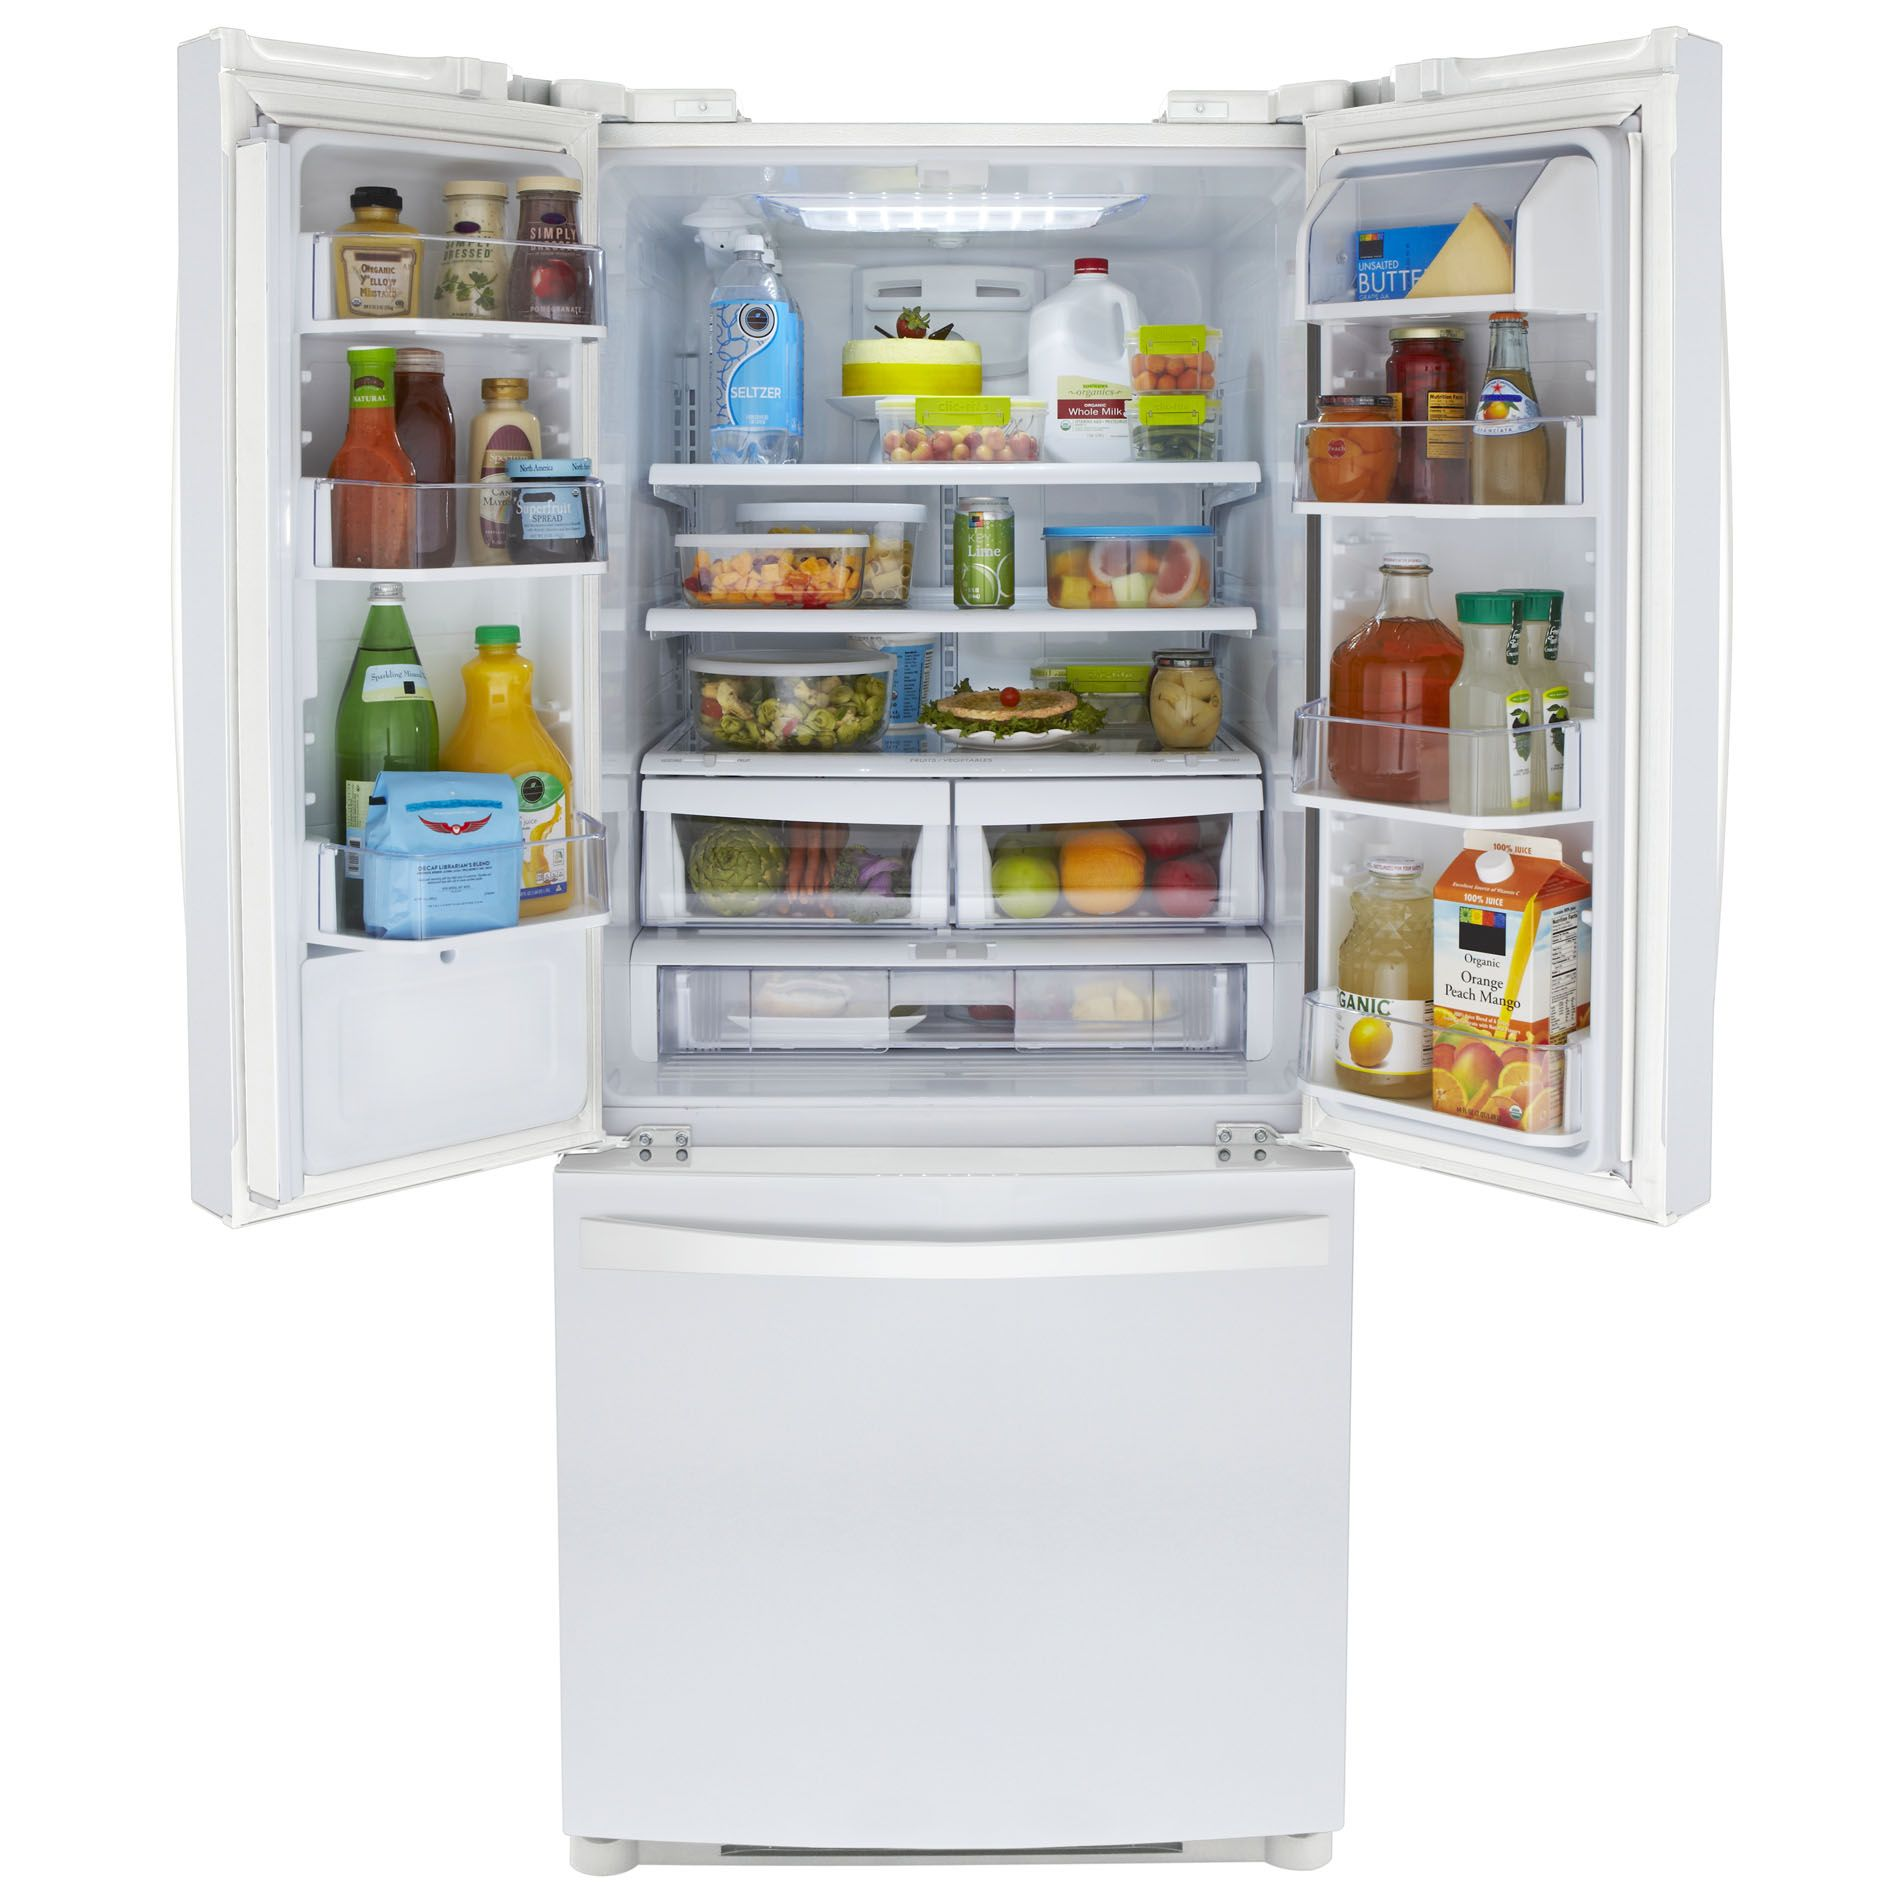 Kenmore Elite 20 cu. ft. French-Door Bottom-Freezer Refrigerator - White